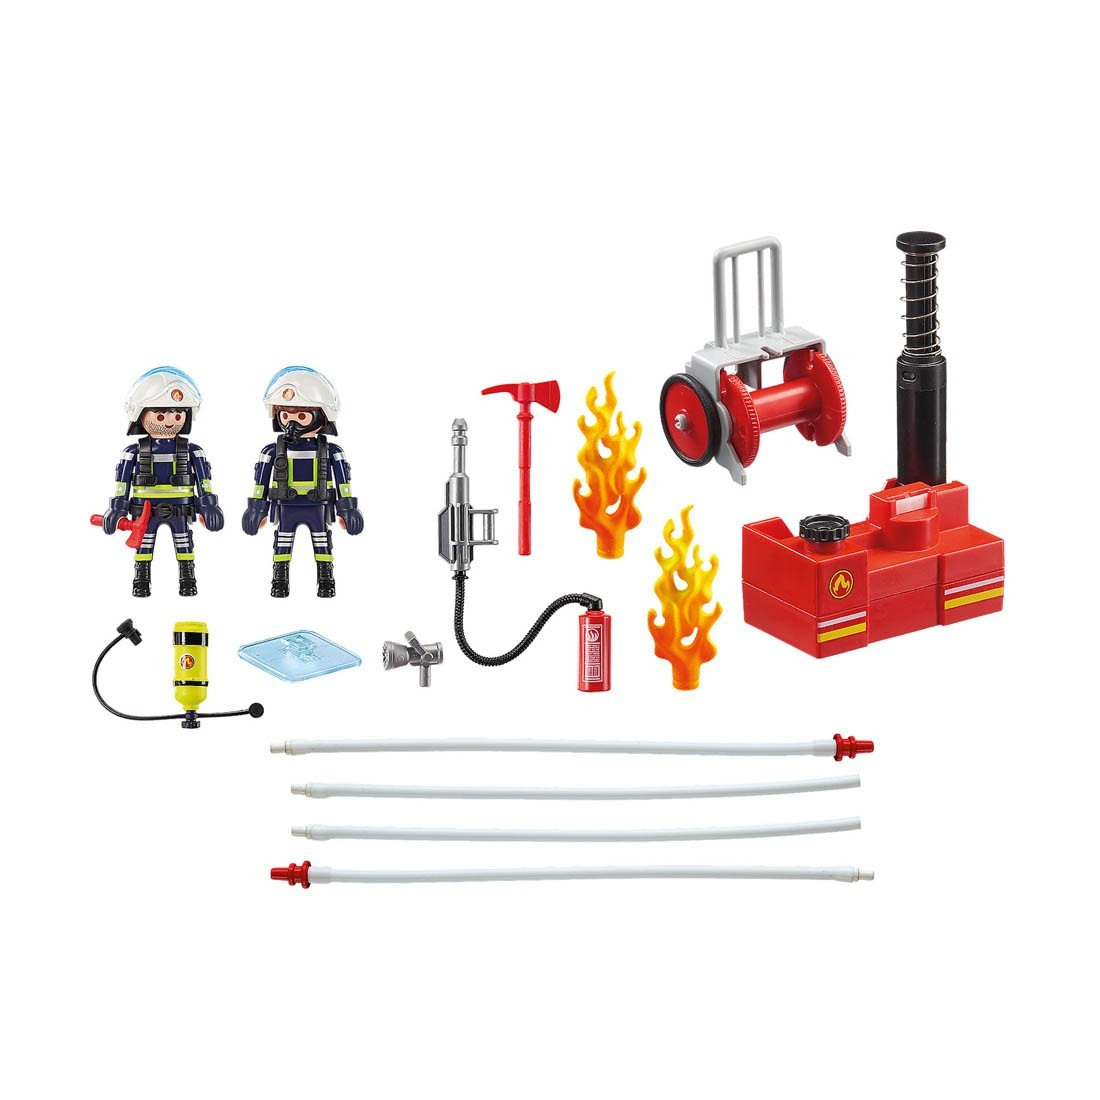 playmobil-city-action-fire-firefighter-figures-with-water-pump-hose